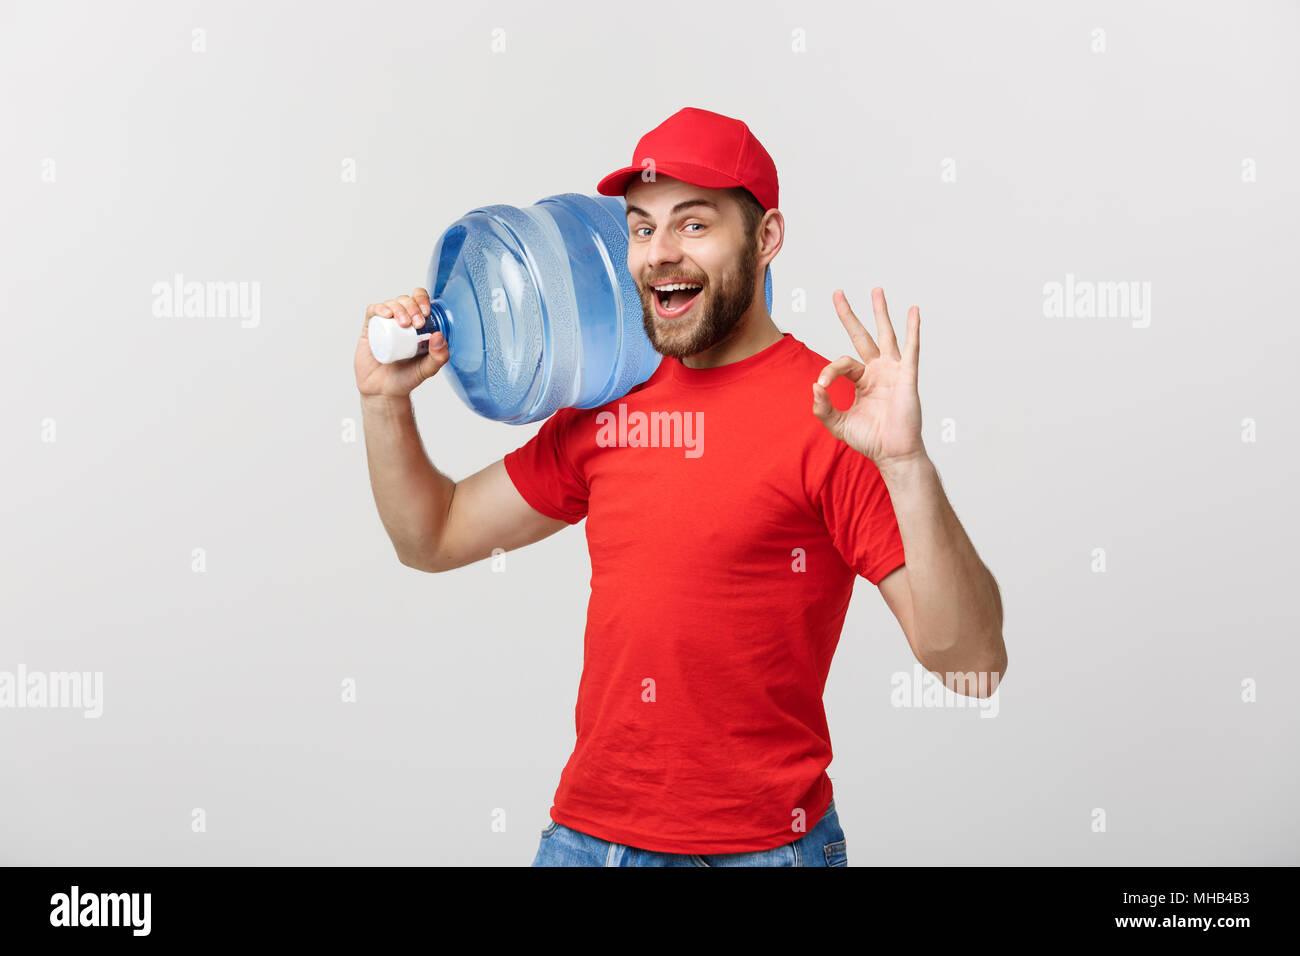 Portrait smiling bottled water delivery courier in red t-shirt and cap carrying tank of fresh drink and showing ok isolated over white background. Stock Photo